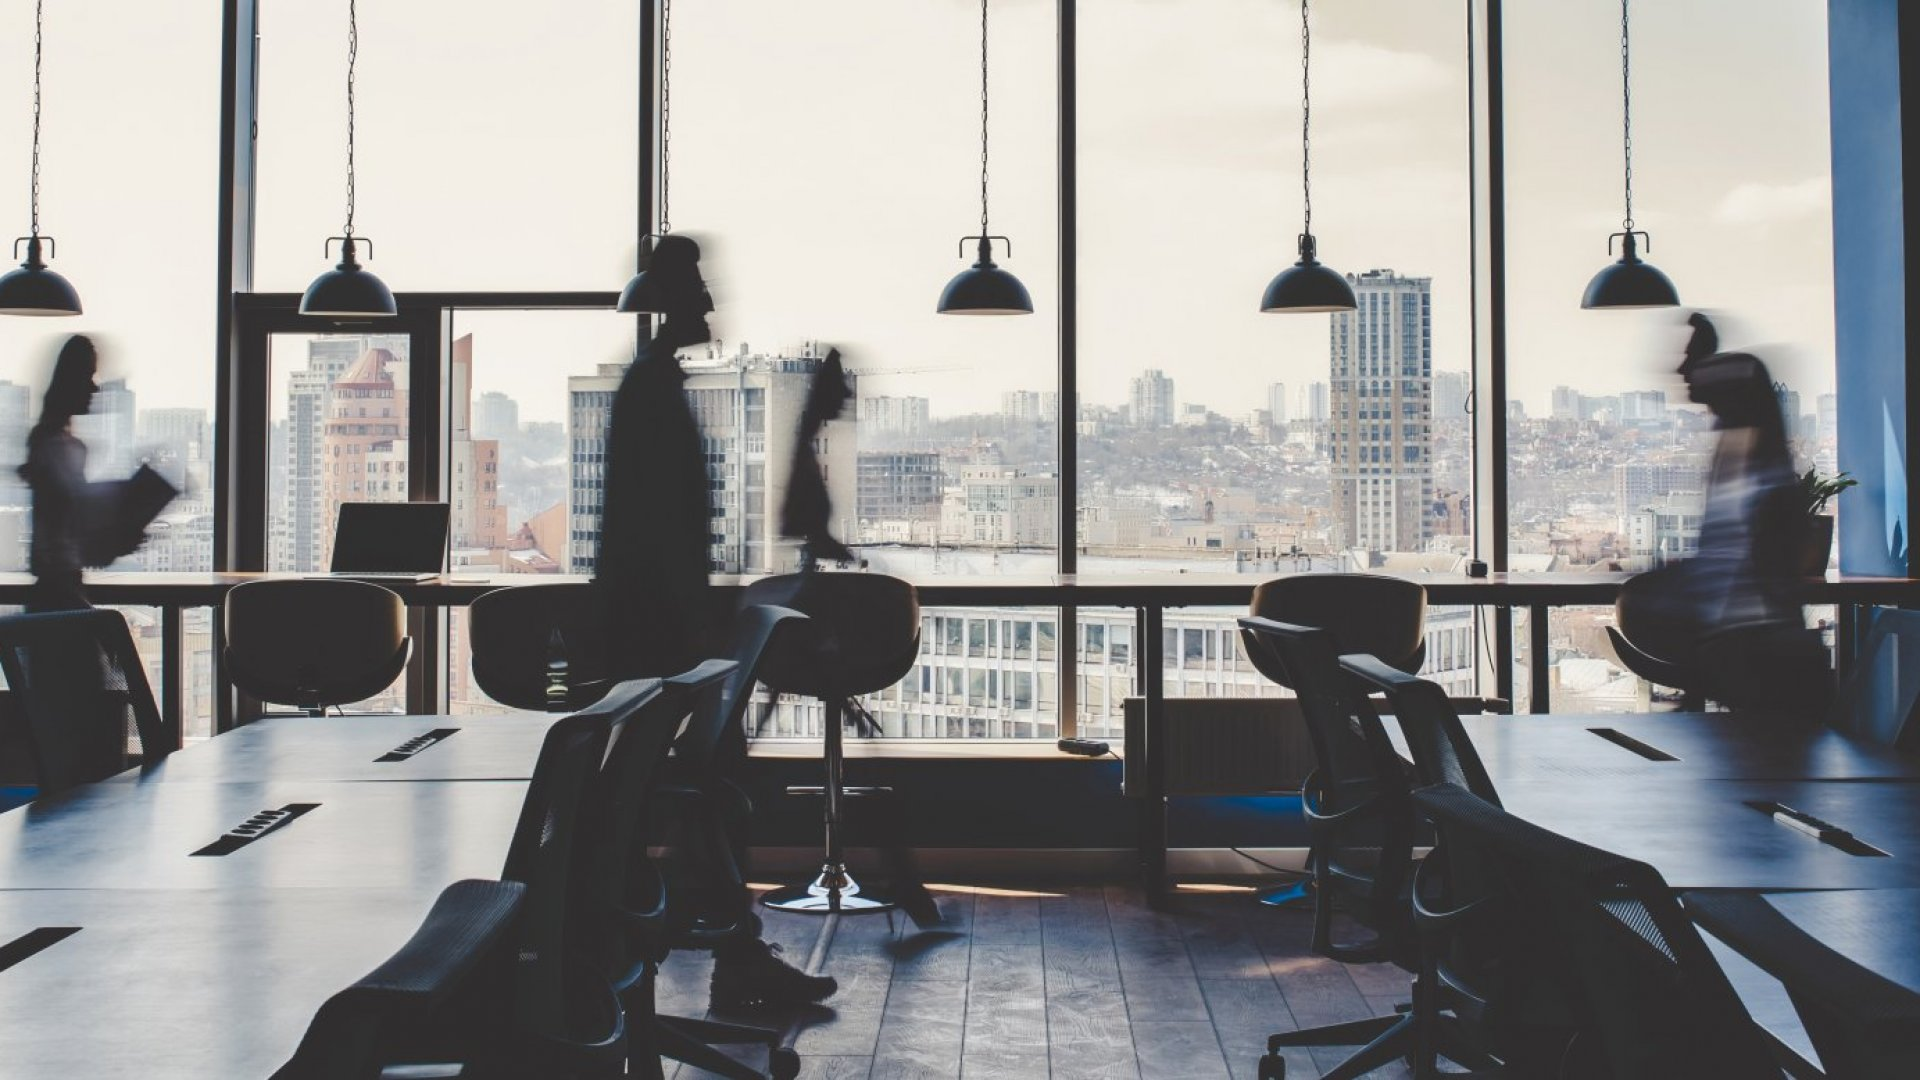 4 Simple Ways to Build a Conscious Culture at Your Company